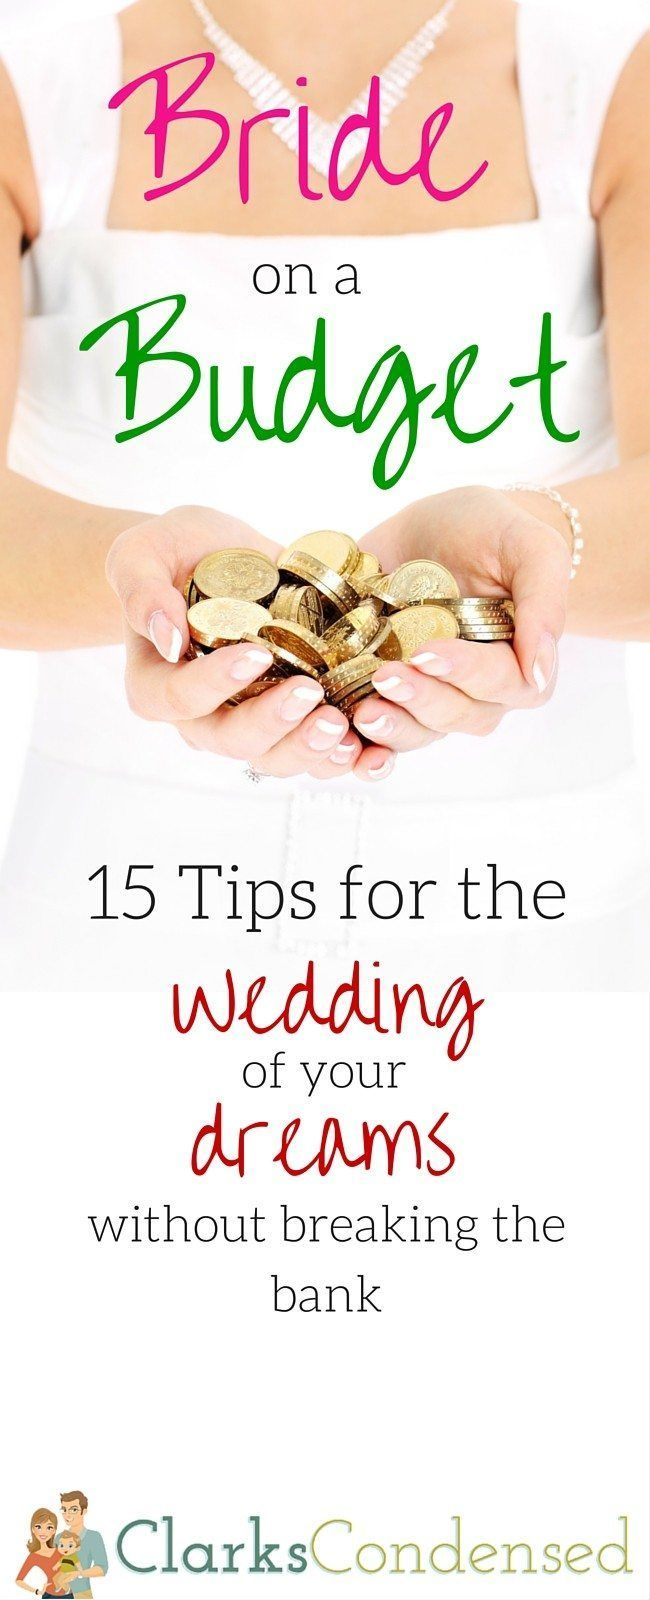 Bride on a Budget: The Best Tips for Saving